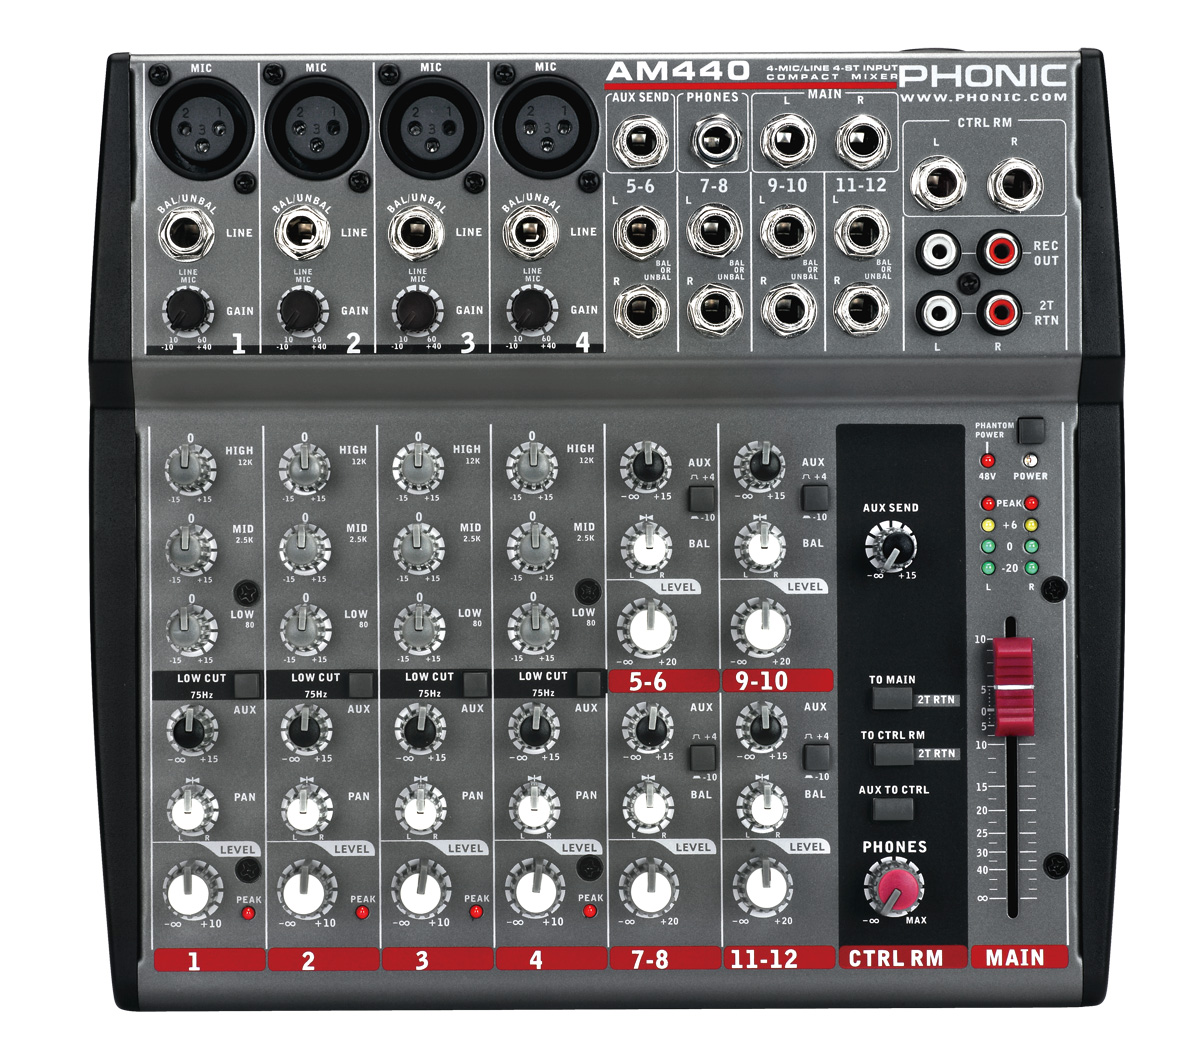 Phonic AM440DP 4-Mic/Line 4-Stereo Compact Mixer with EFX and USB Player